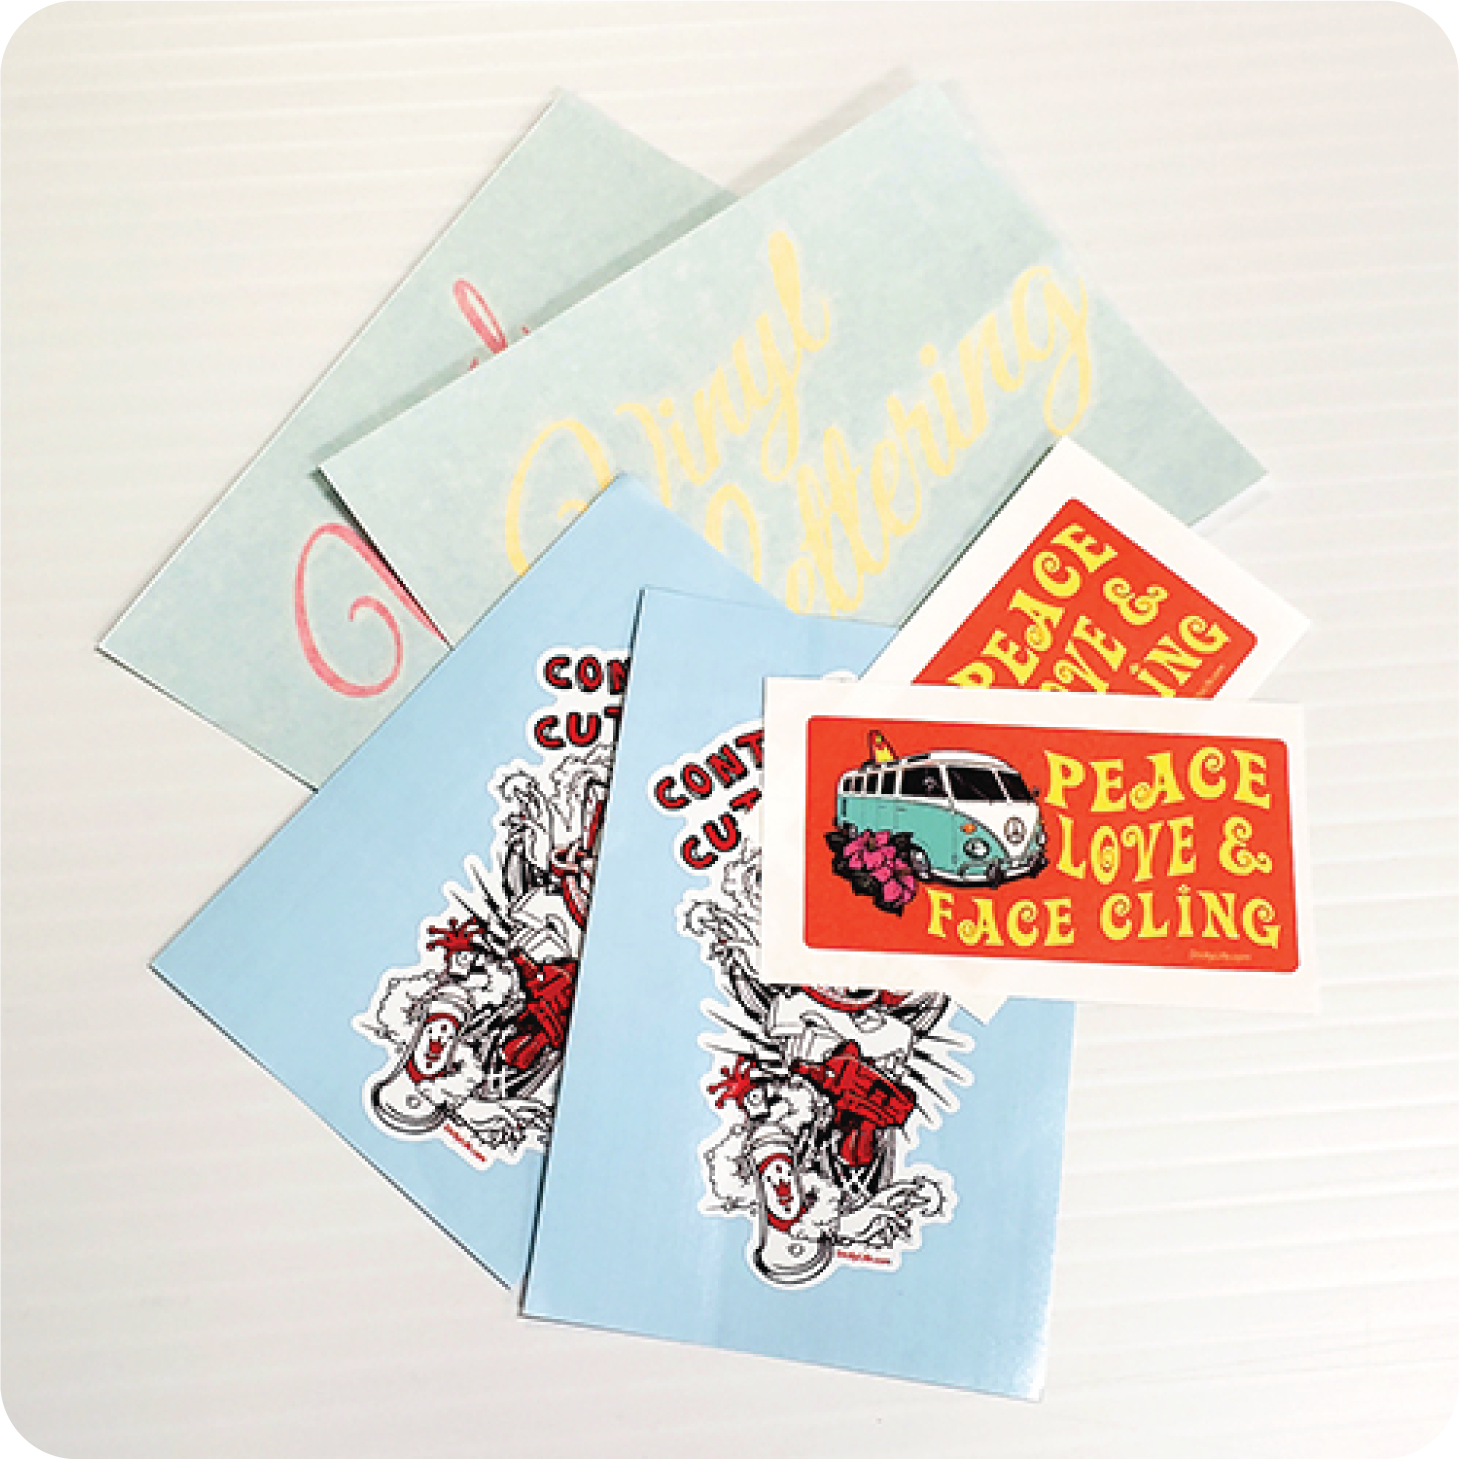 Decals, Stickers, or Clings?